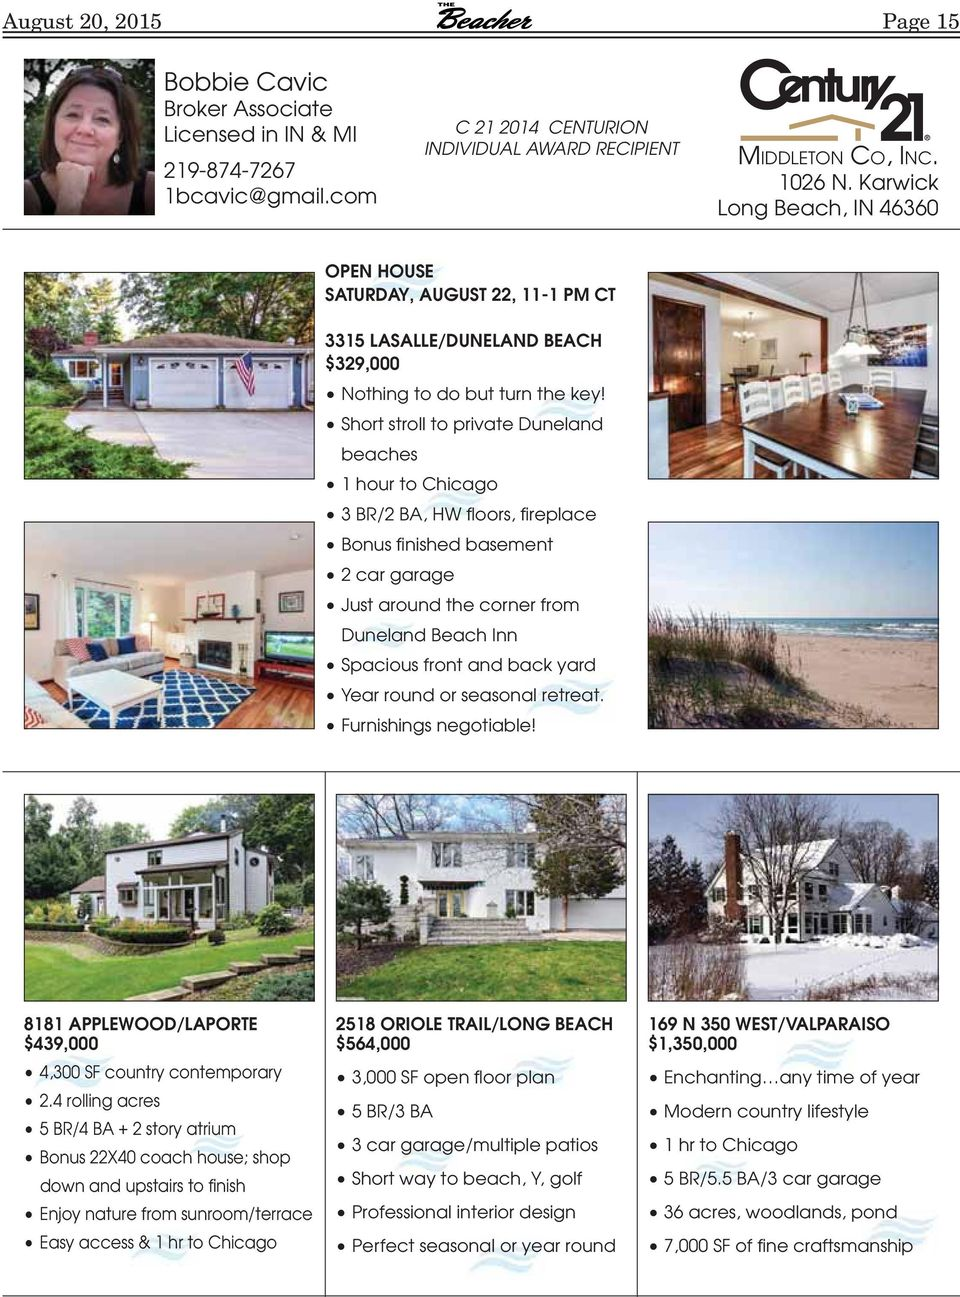 Short stroll to private Duneland beaches 1 hour to Chicago 3 BR/2 BA, HW floors, fireplace Bonus finished basement 2 car garage Just around the corner from Duneland Beach Inn Spacious front and back